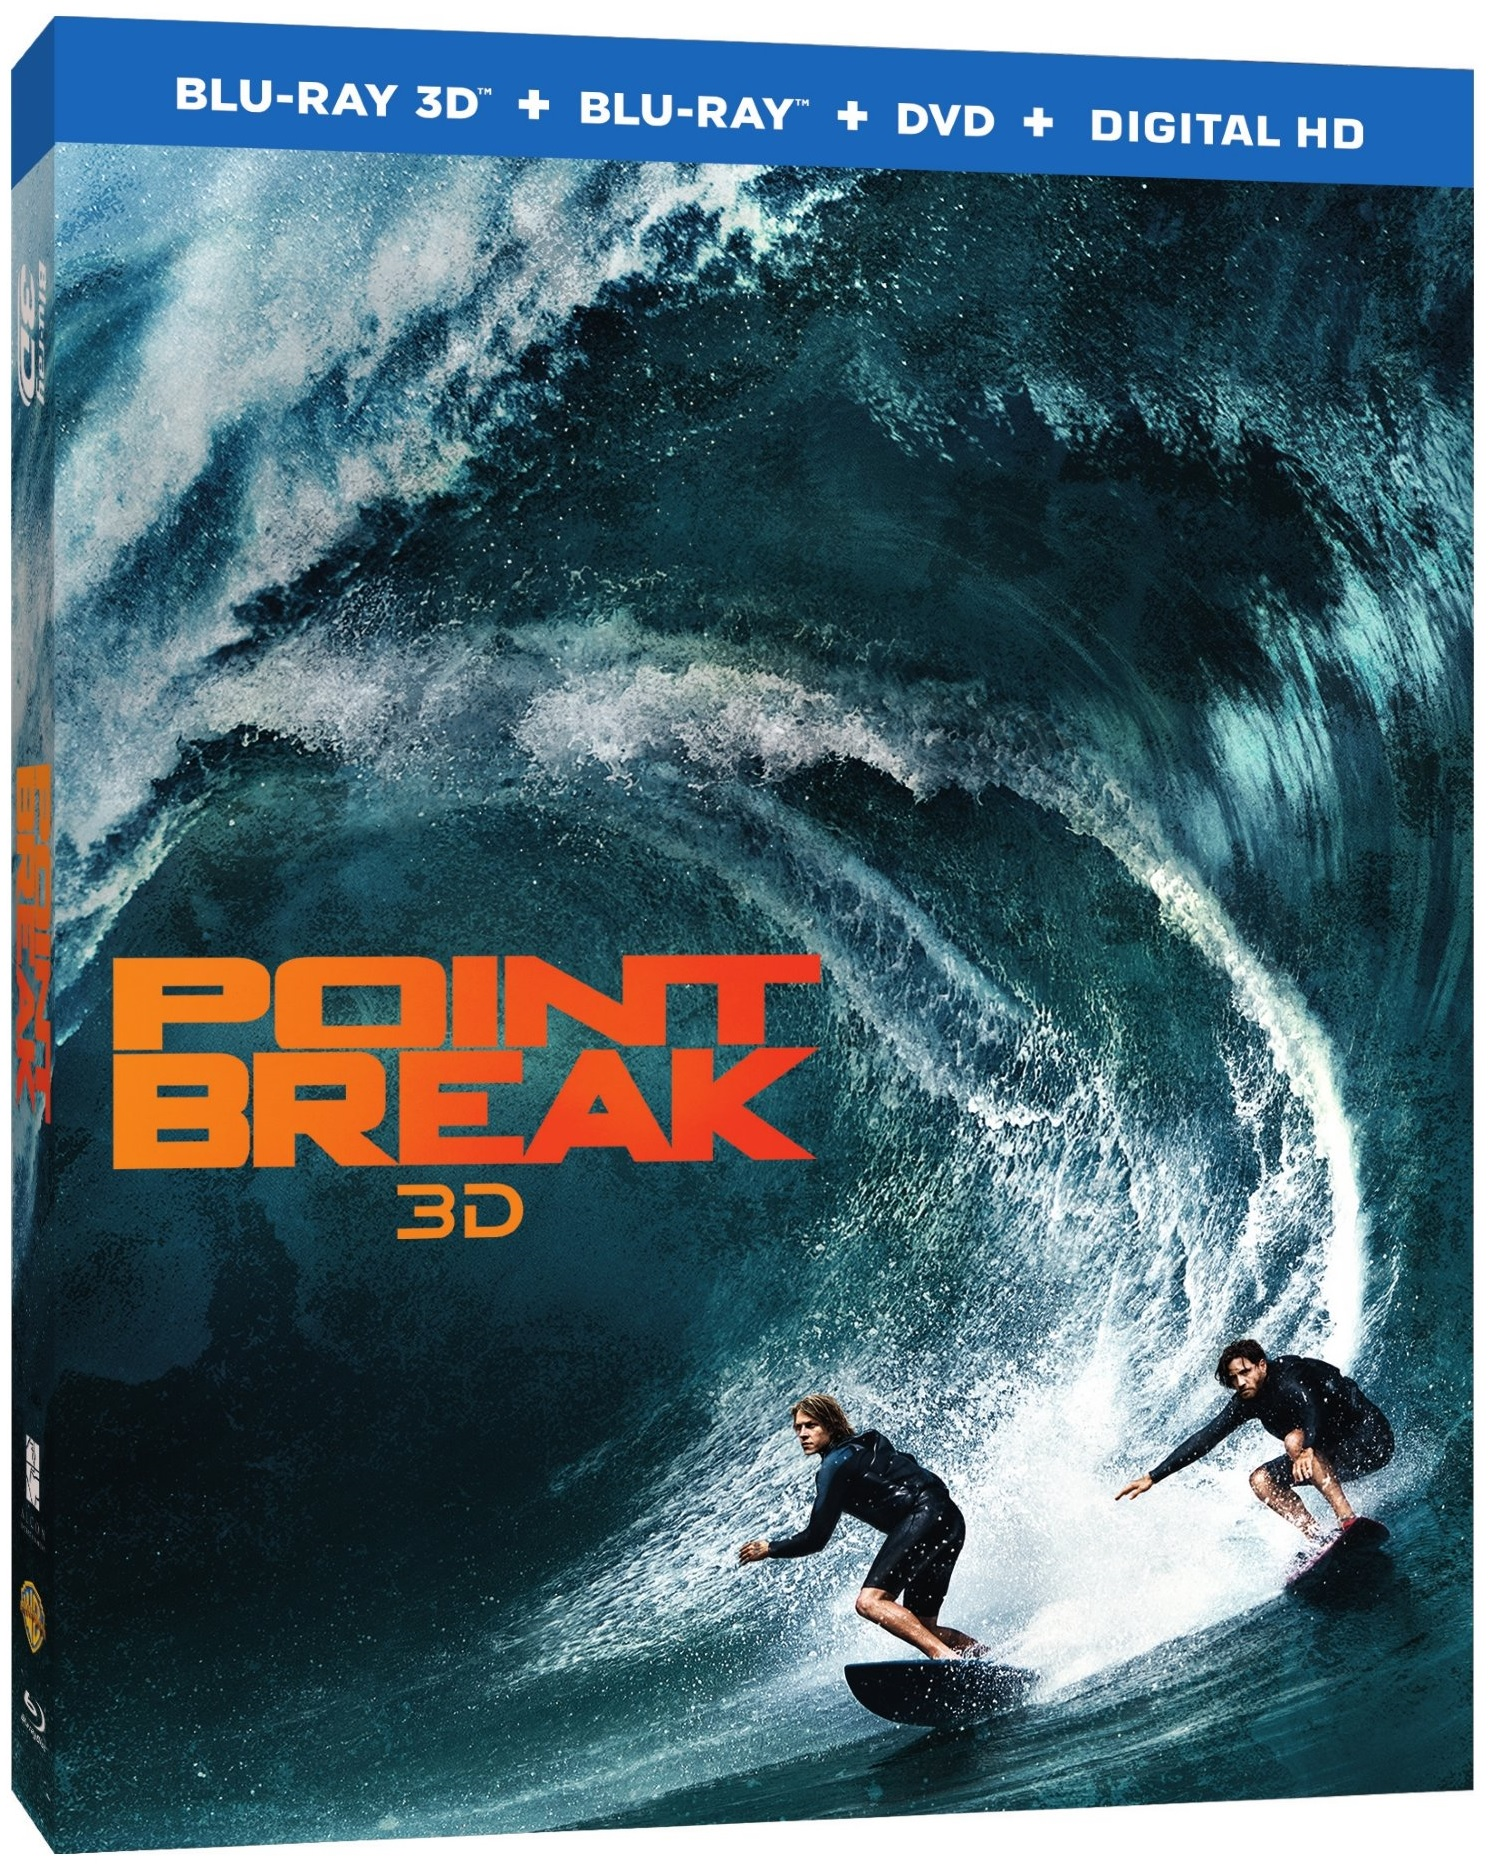 Point Break Blu-ray Review